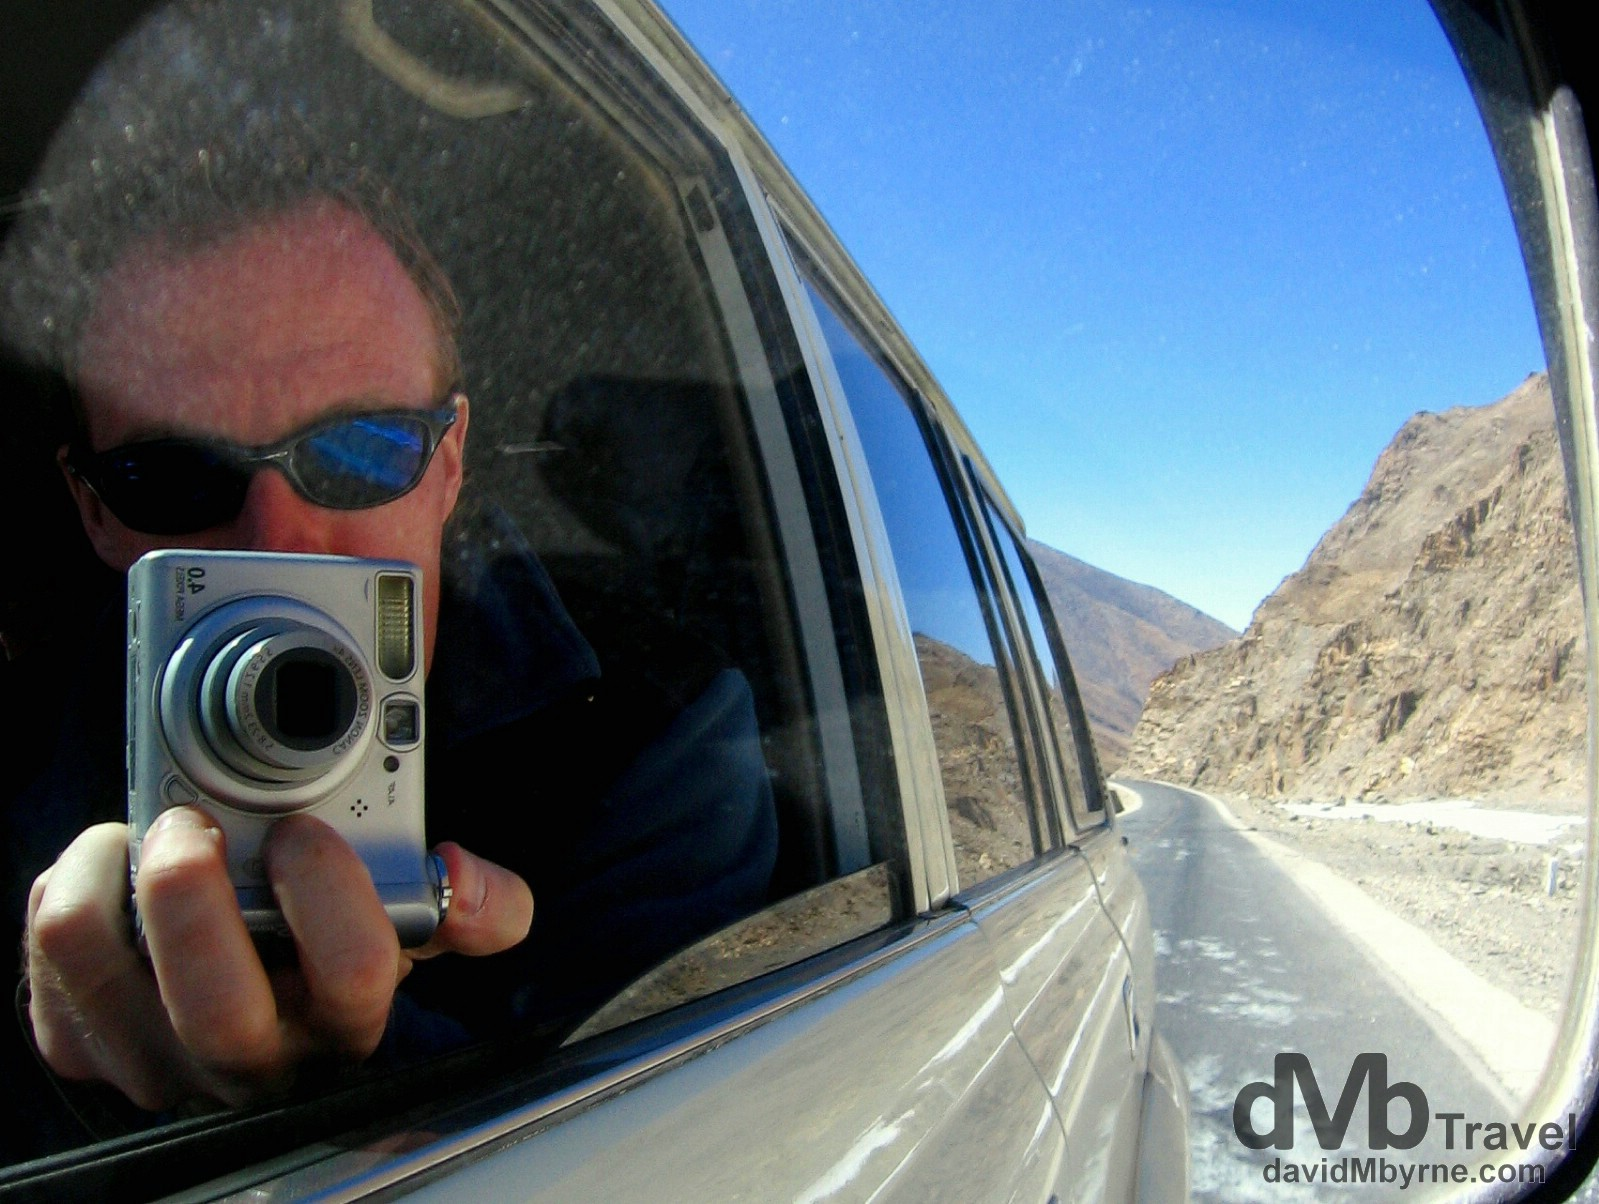 Front seat reflection selfie on the Friendship Highway, Tibet. March 2, 2008.